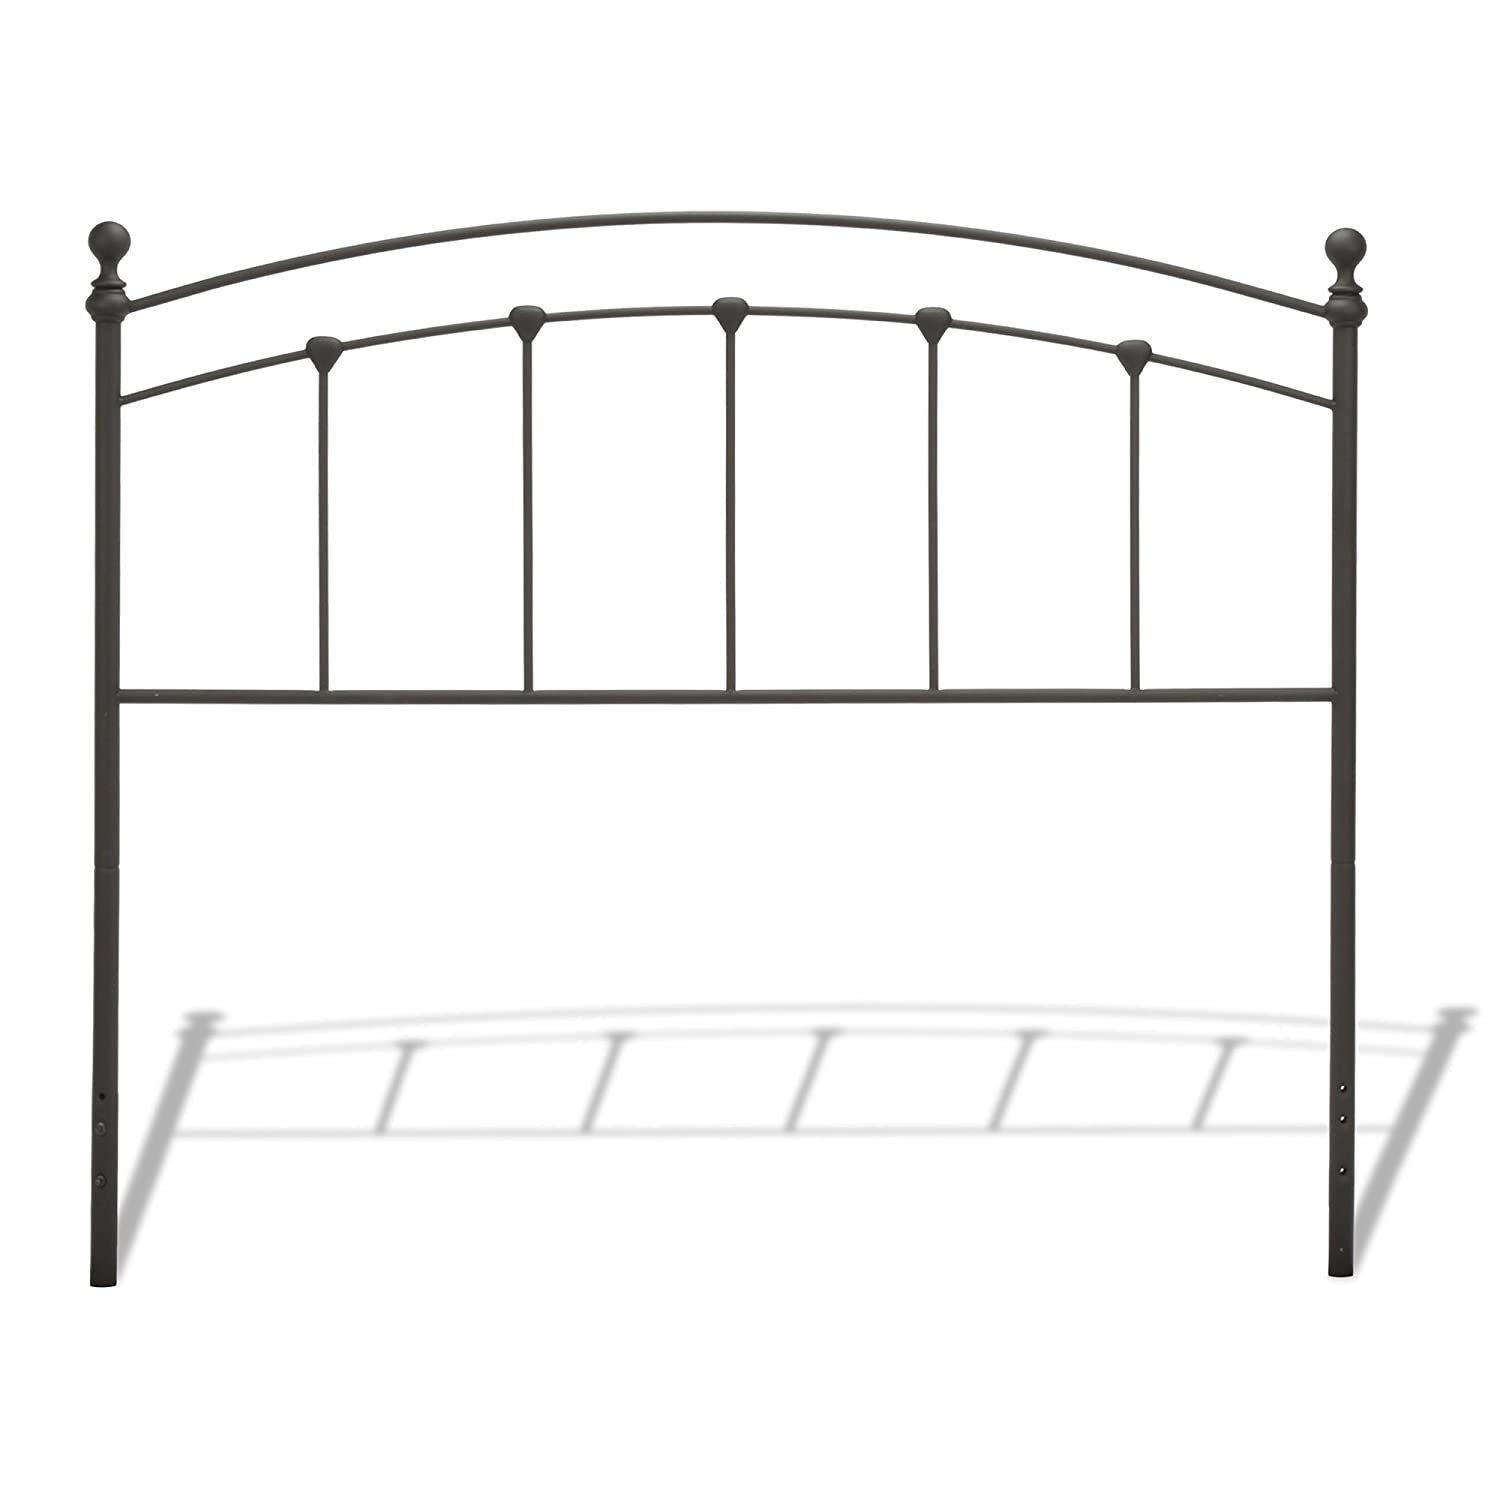 Sanford Metal Headboard with Castings and Round Finial Posts, Matte Black Finish, Twin B42443